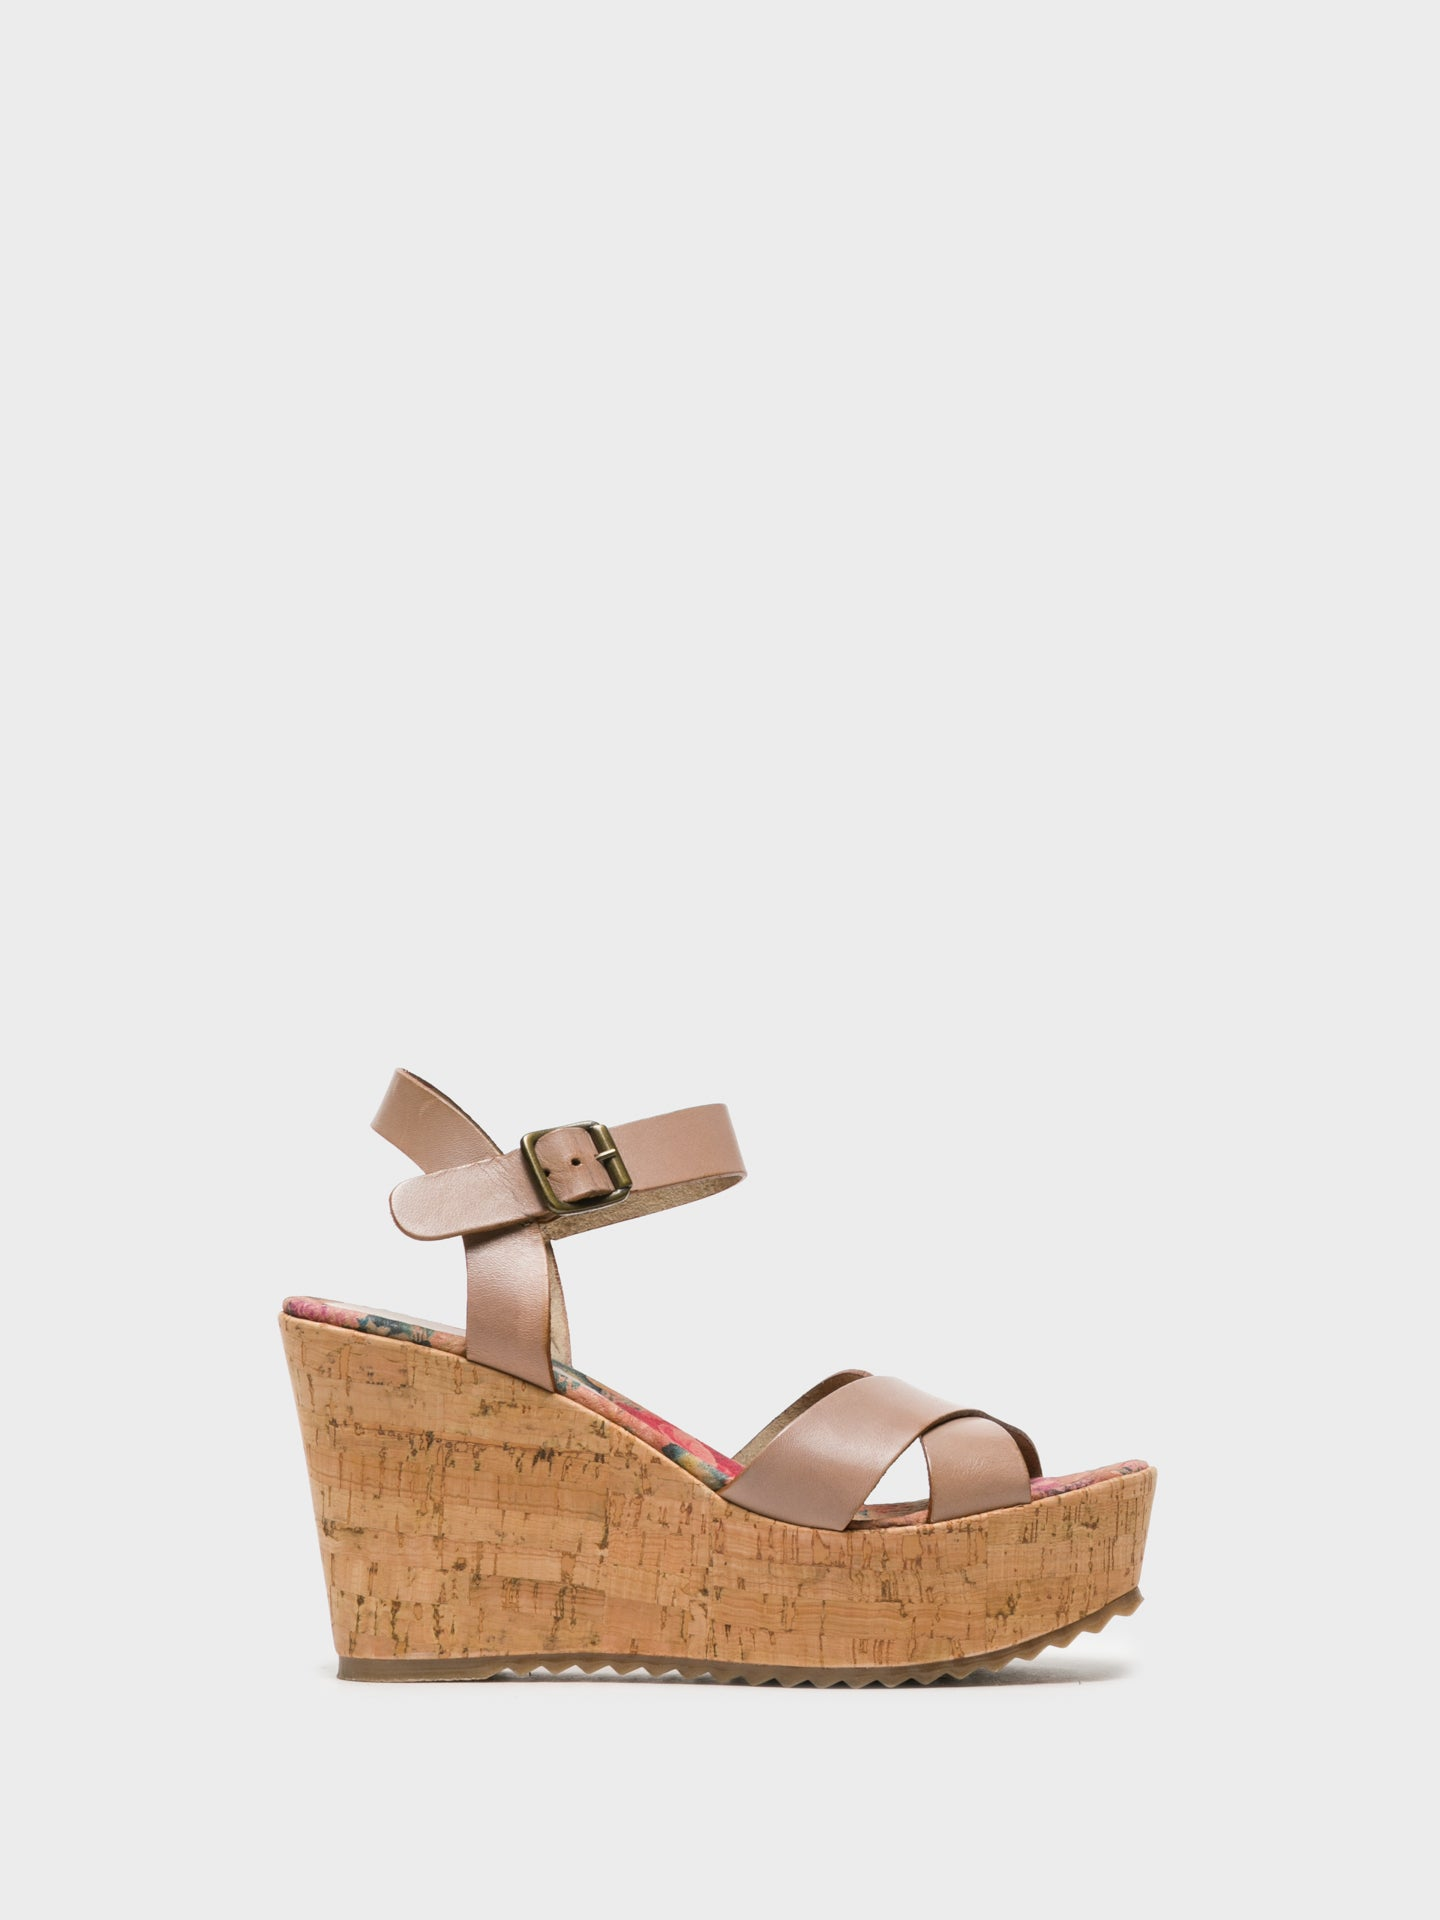 Foreva Wheat Wedge Sandals